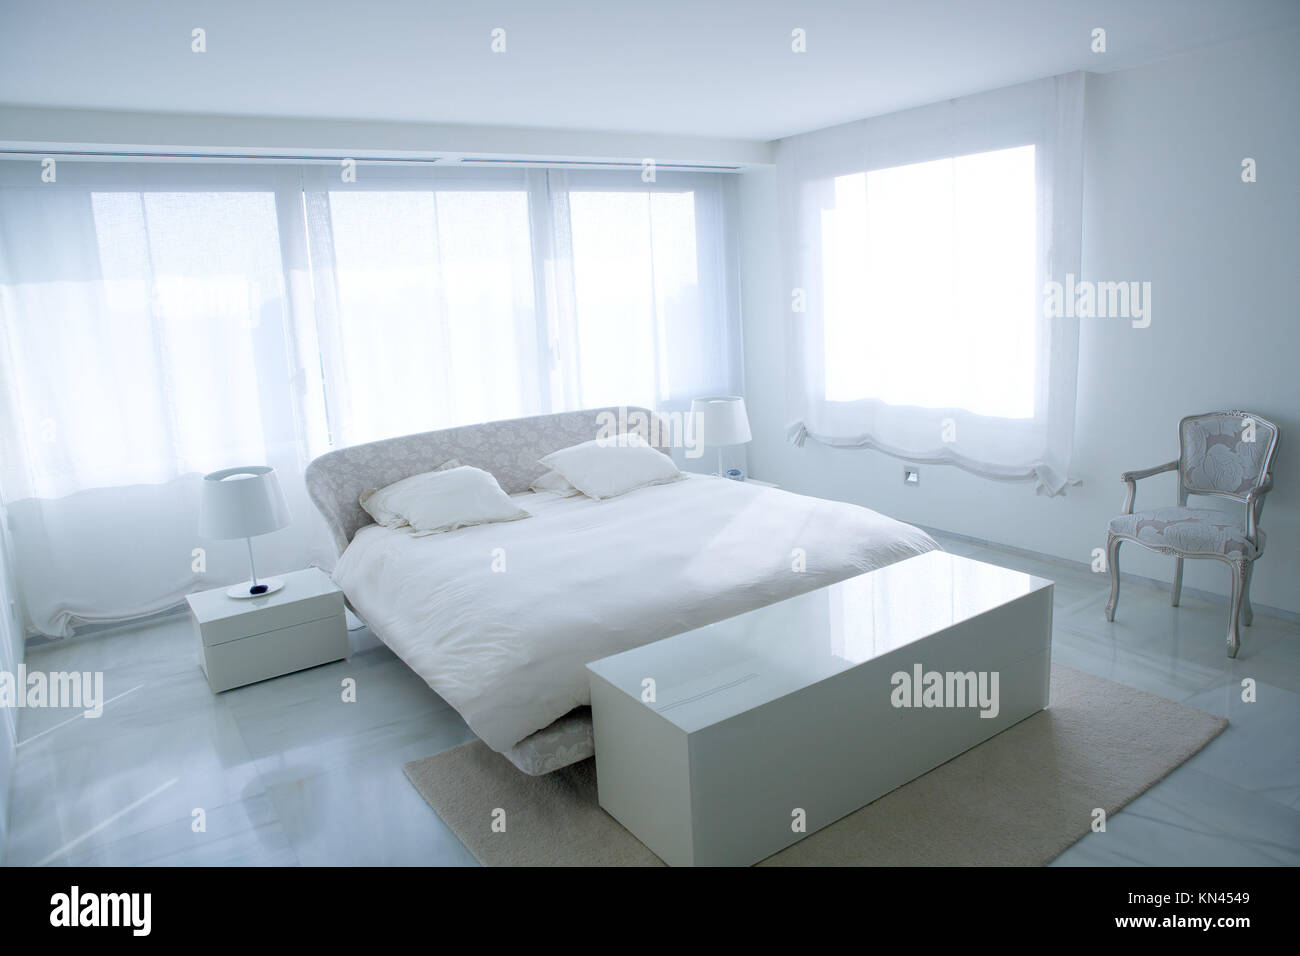 Modern White House Bedroom With Marble Floor And Luminous Windows Stock Photo Alamy